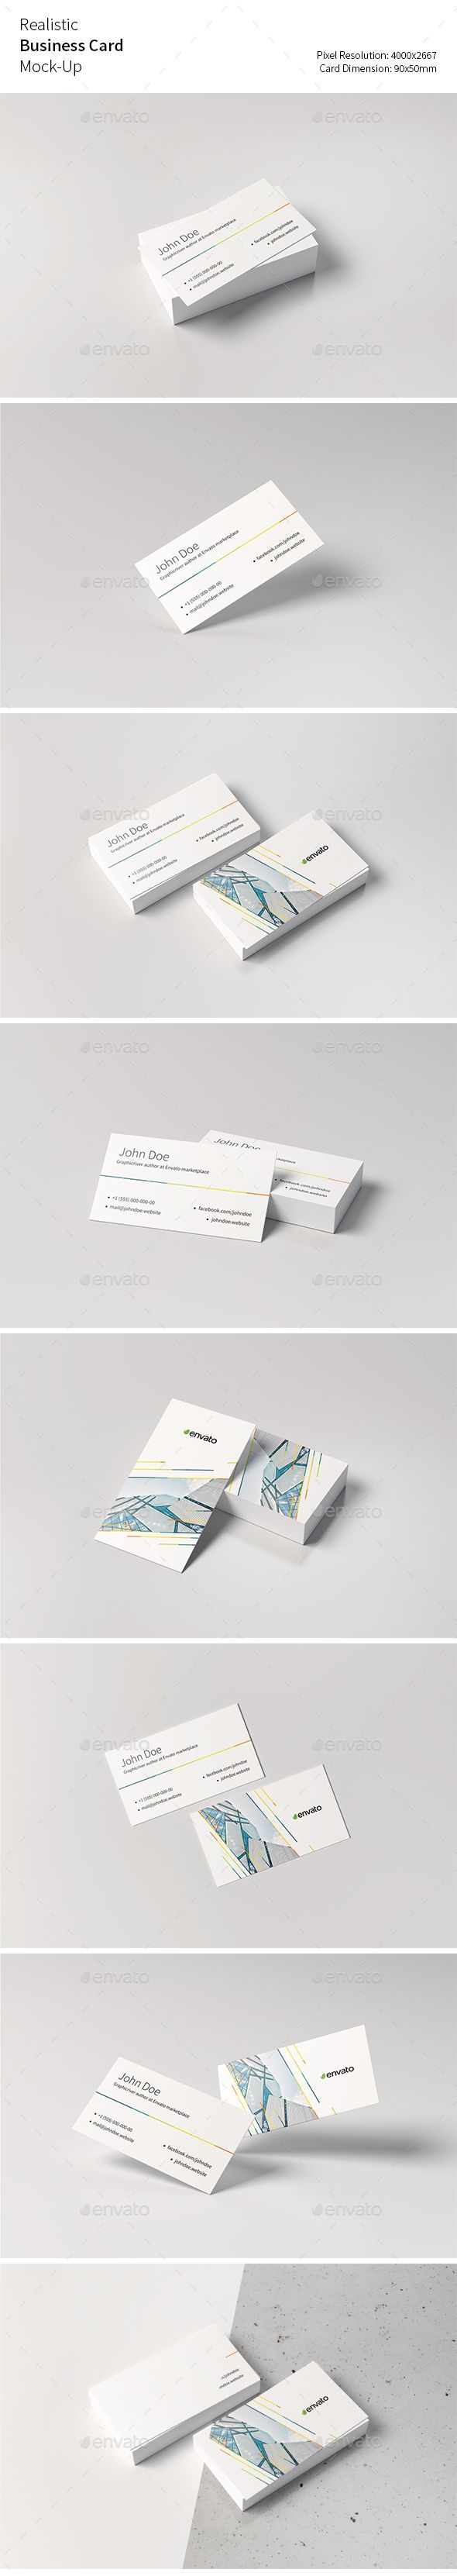 14 best business card design images on pinterest name cards realistic business card mock up reheart Gallery